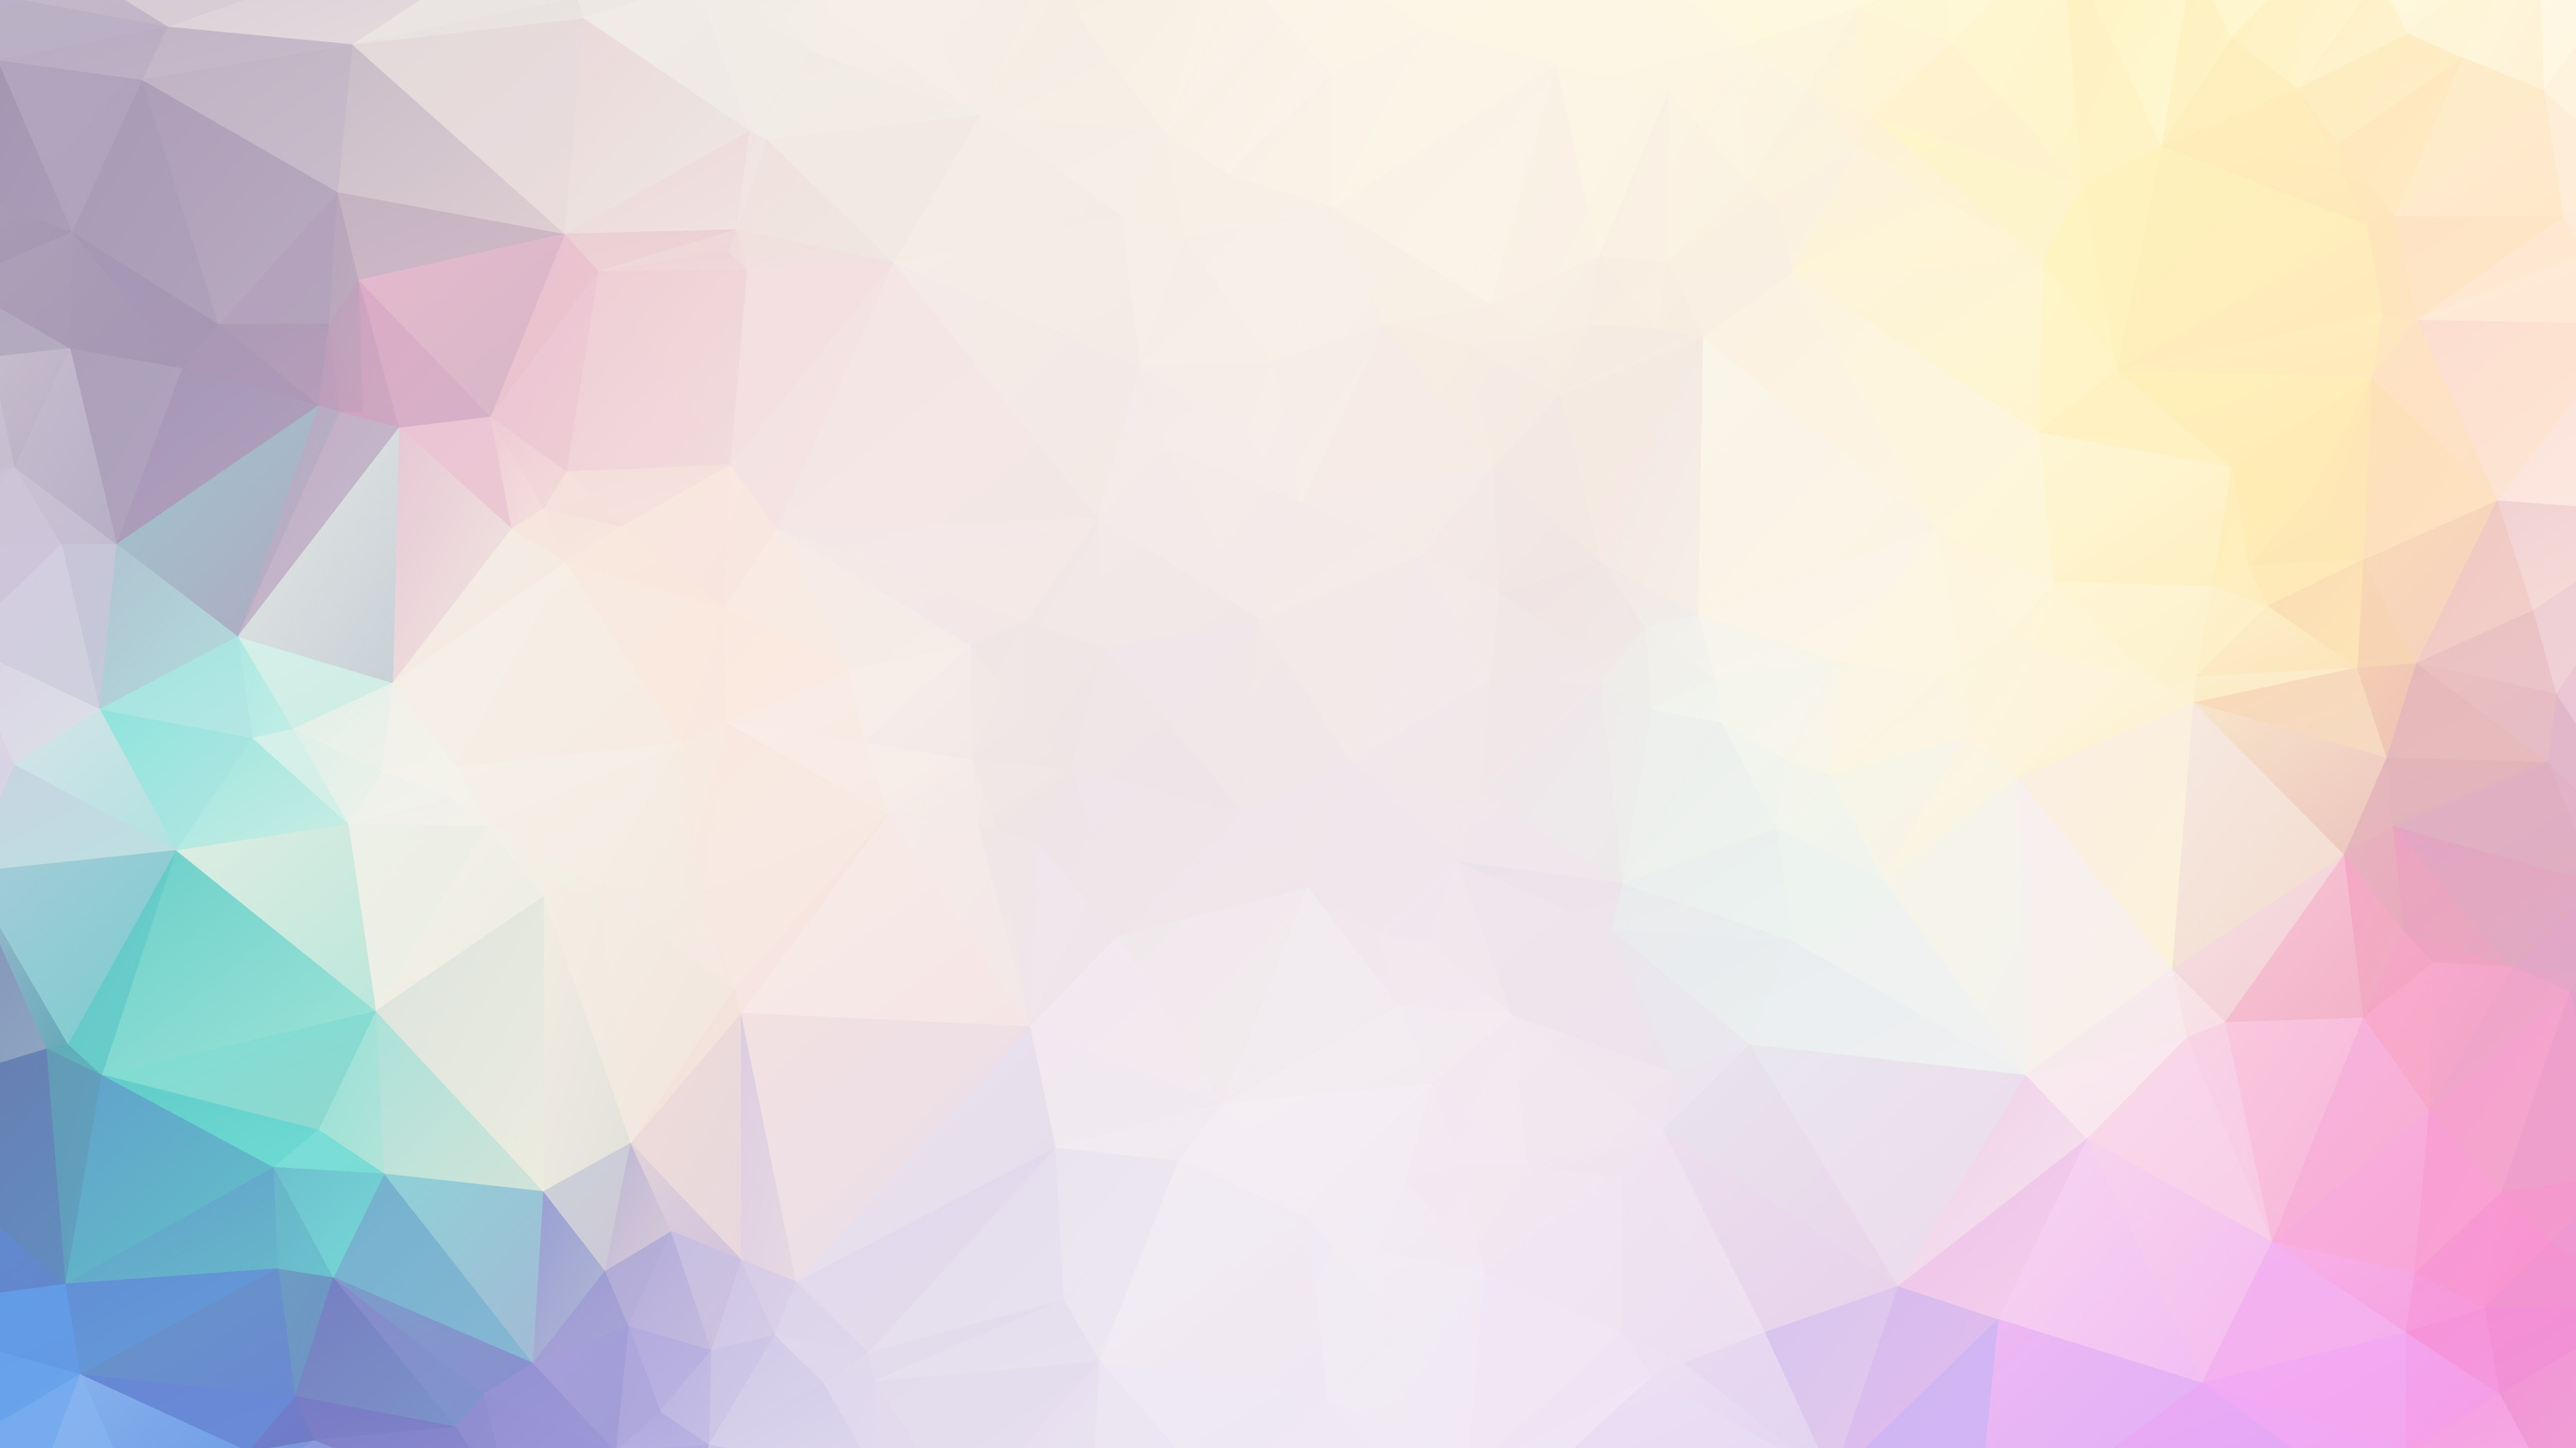 bigstock-Polygonal-Abstract-Background--187364575-1.jpg